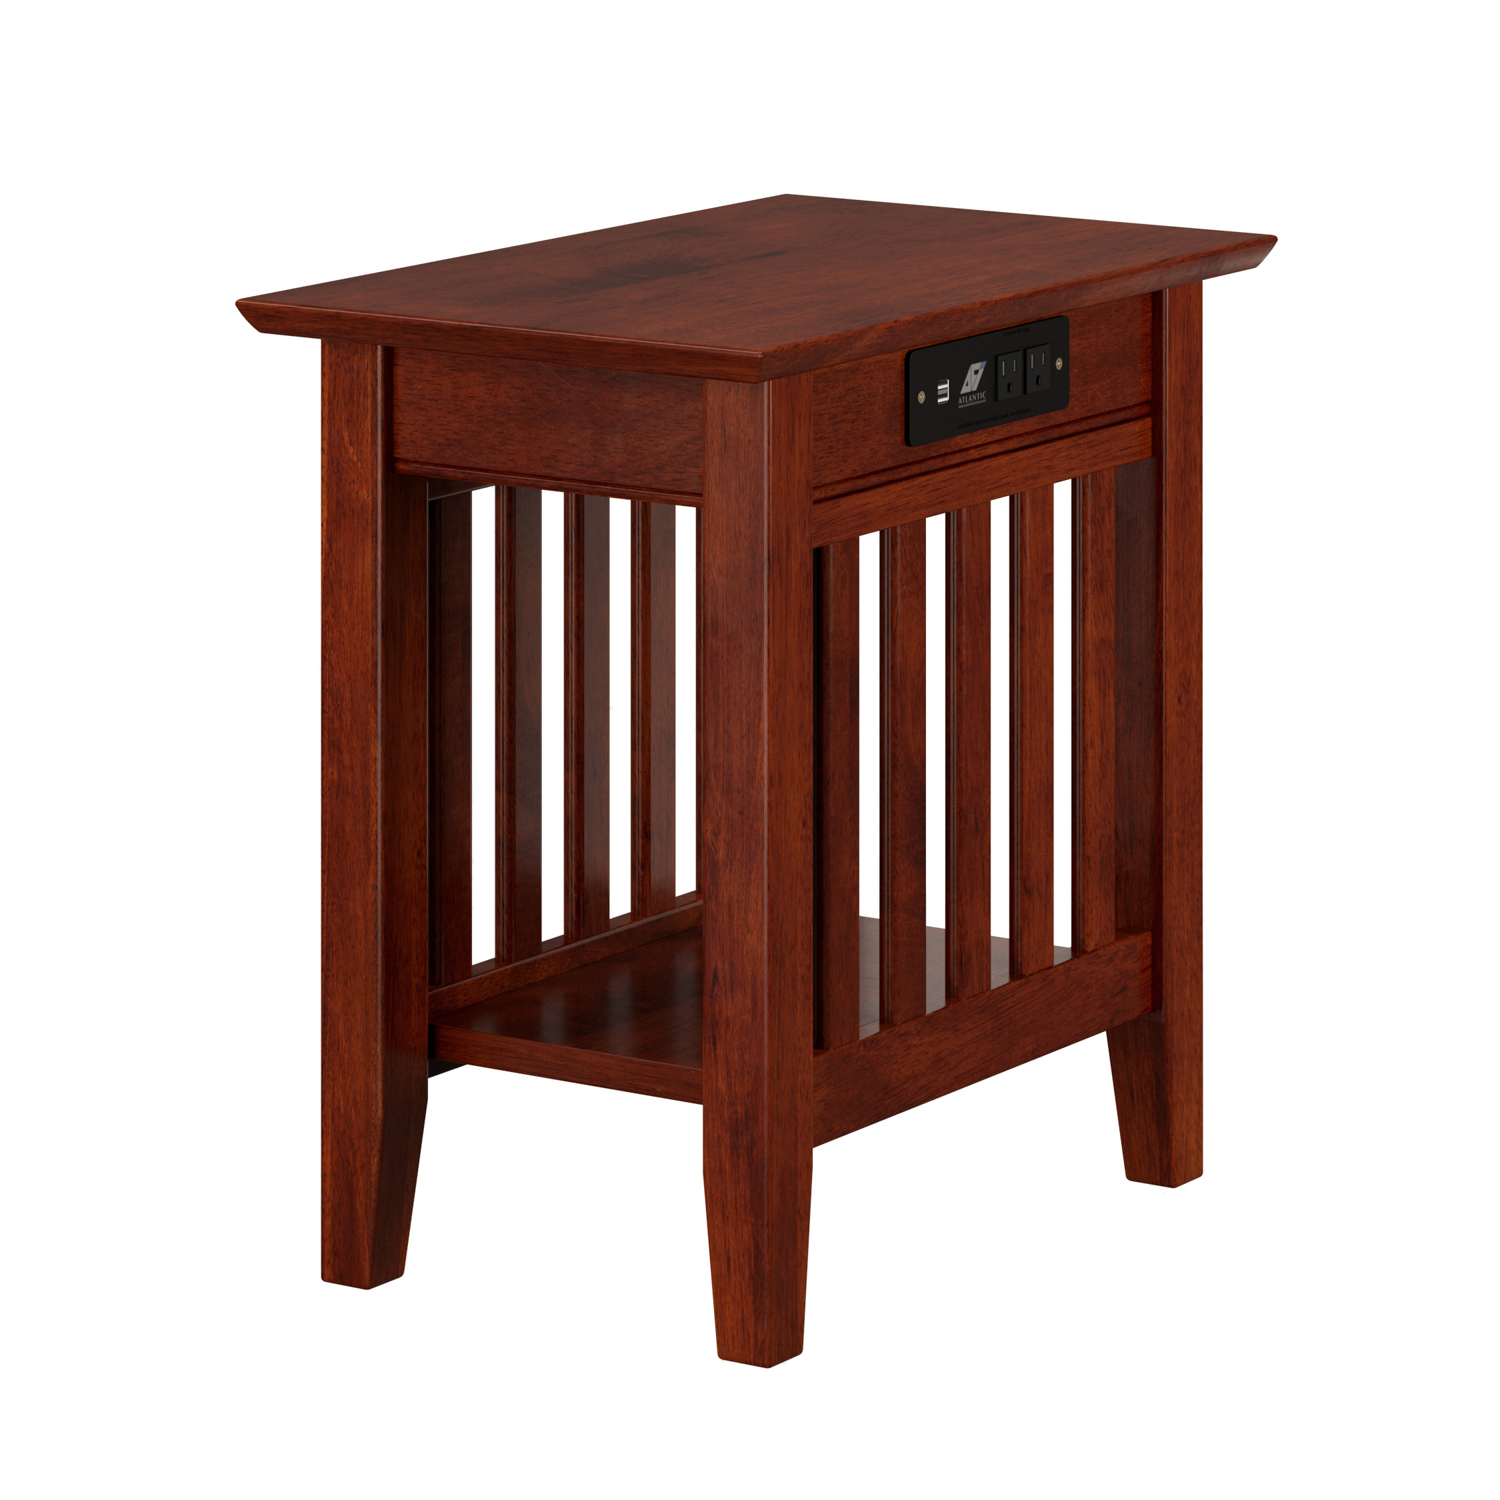 Exceptionnel Atlantic Furniture Charlotte Chair Side Table With Charging Station |  Hayneedle